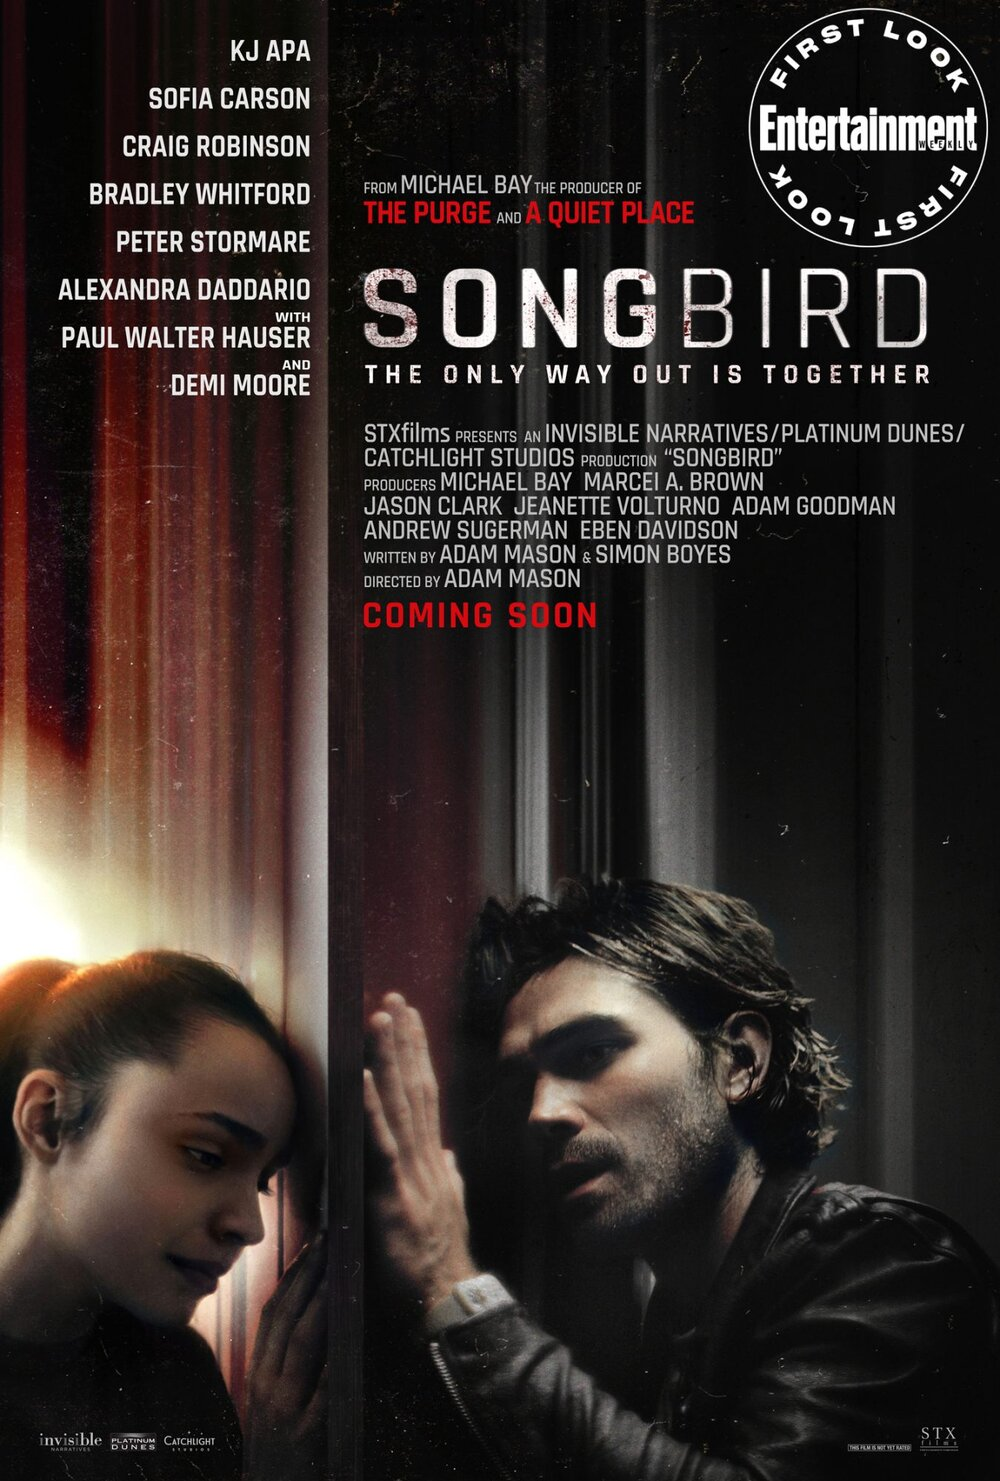 first-photos-and-poster-and-details-for-the-michael-bay-produced-quarantine-virus-thriller-songbird34